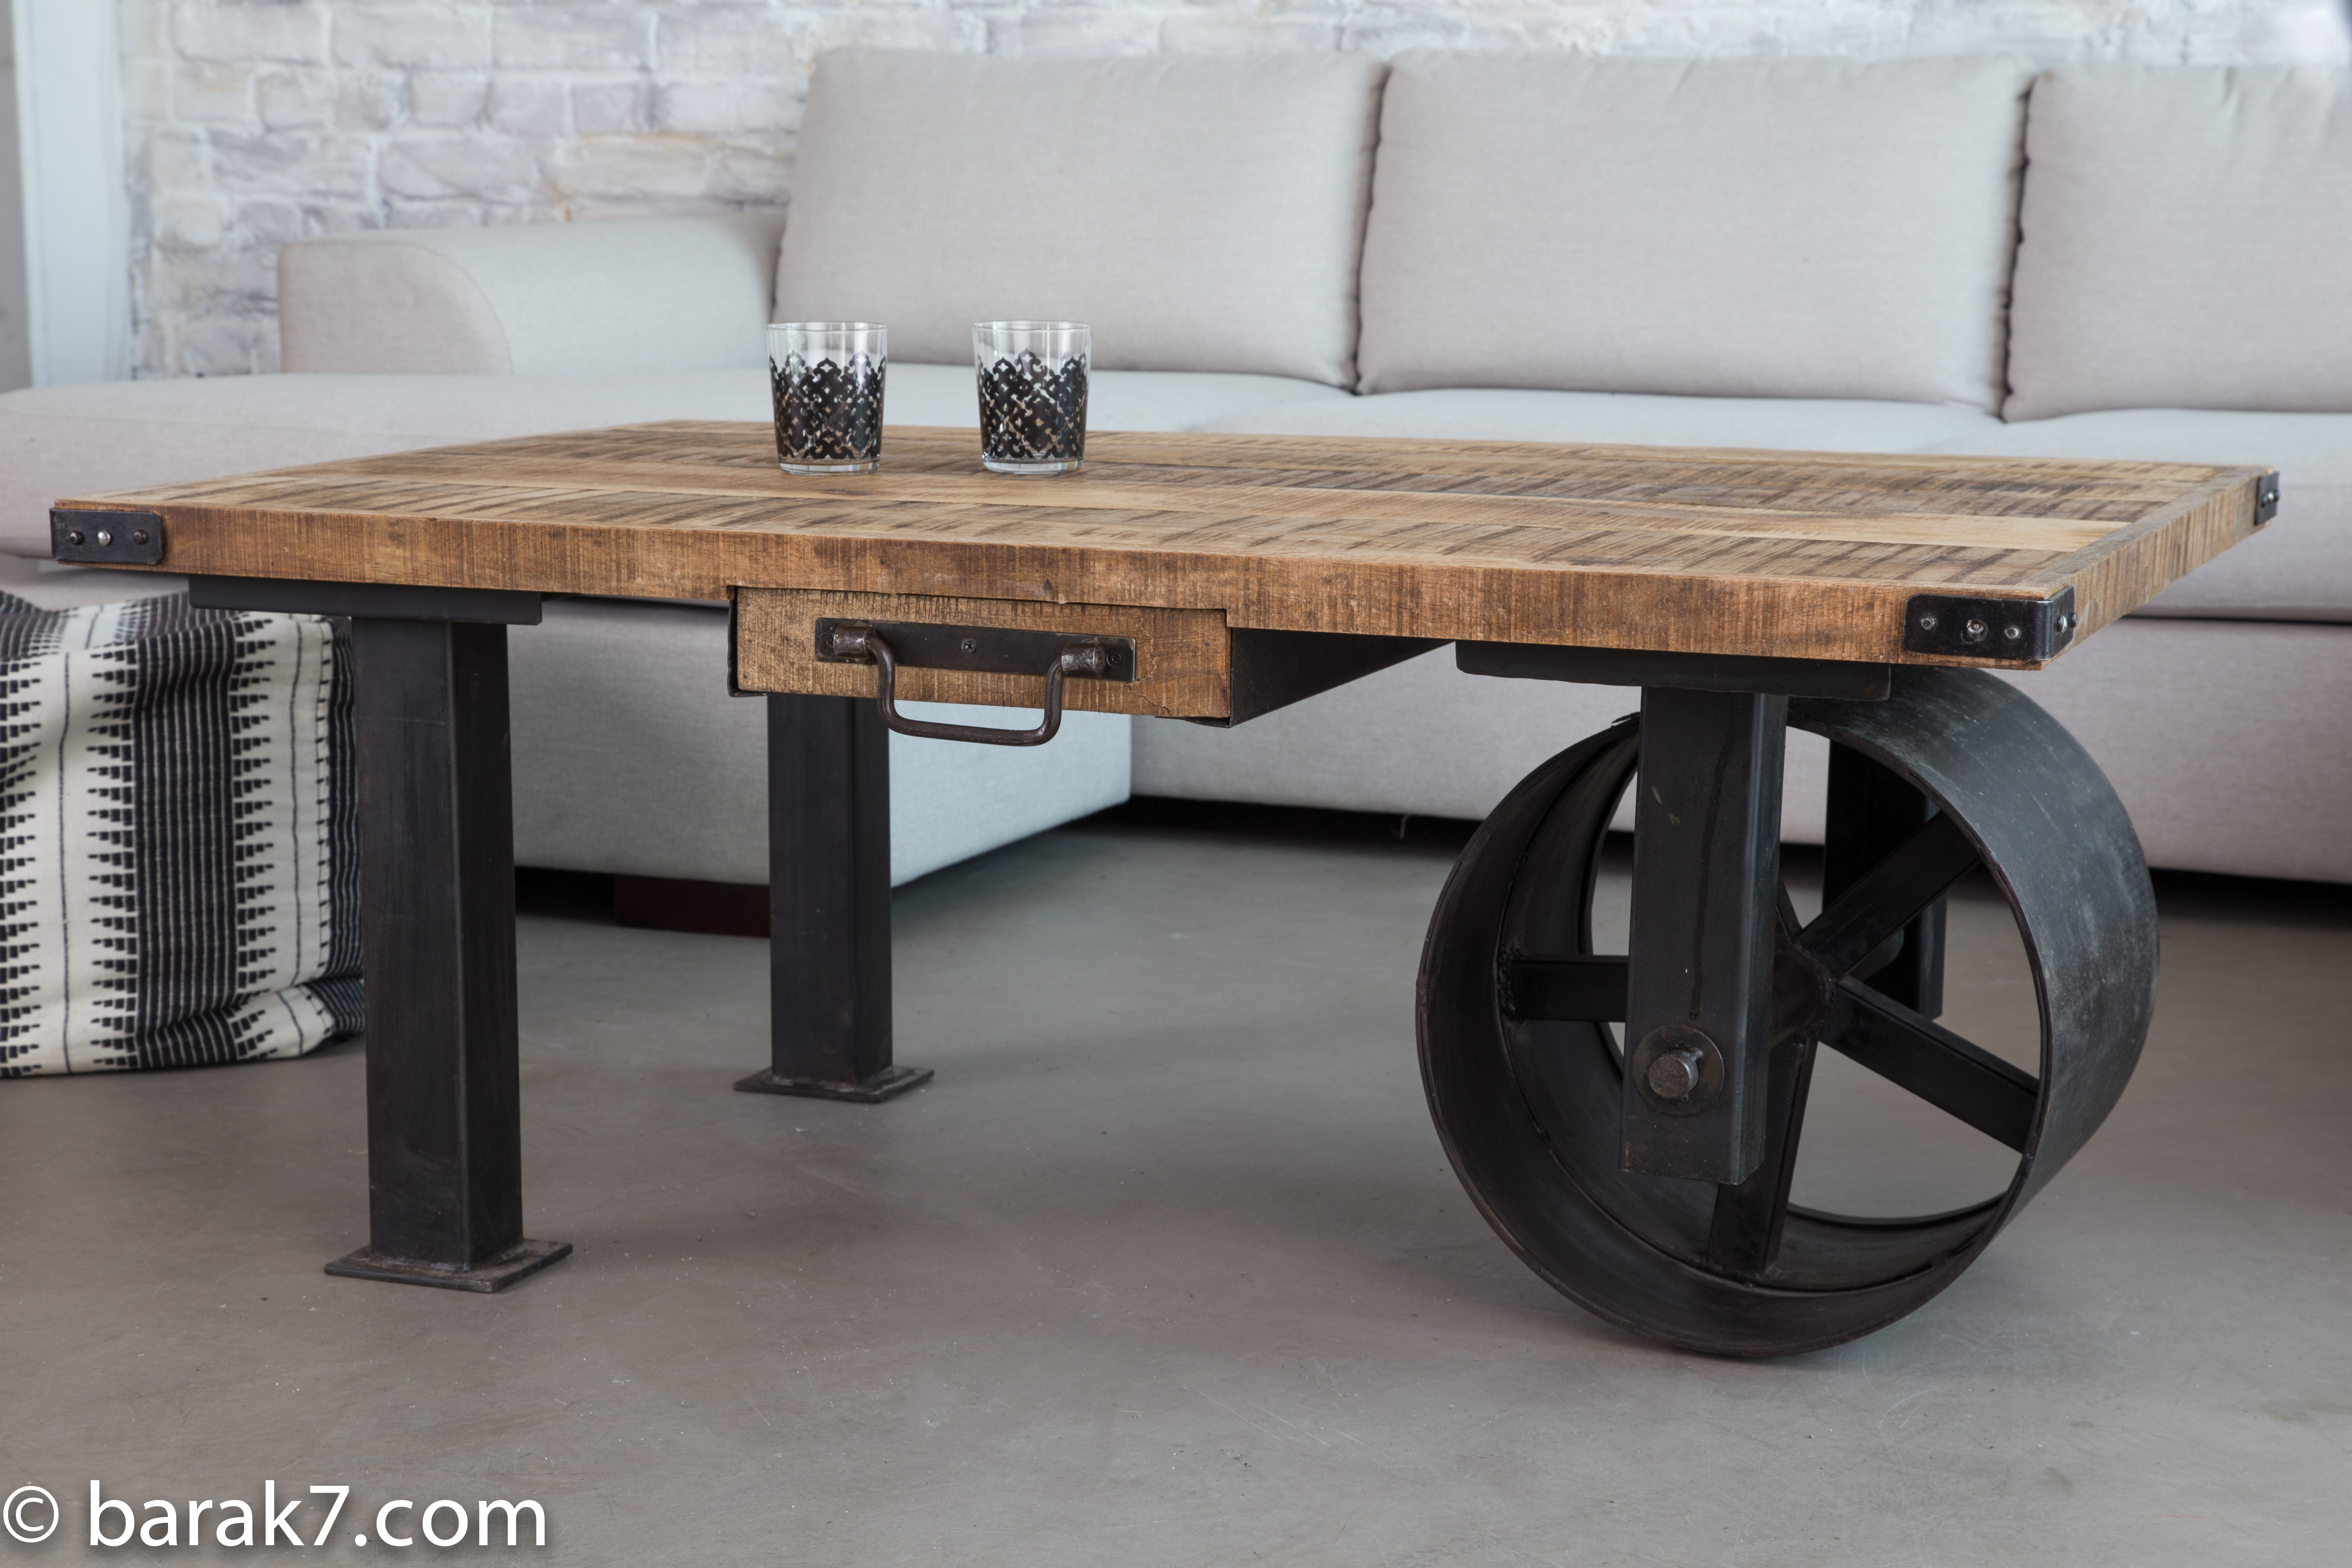 New Industrial Style Furniture Range From Barak7 The